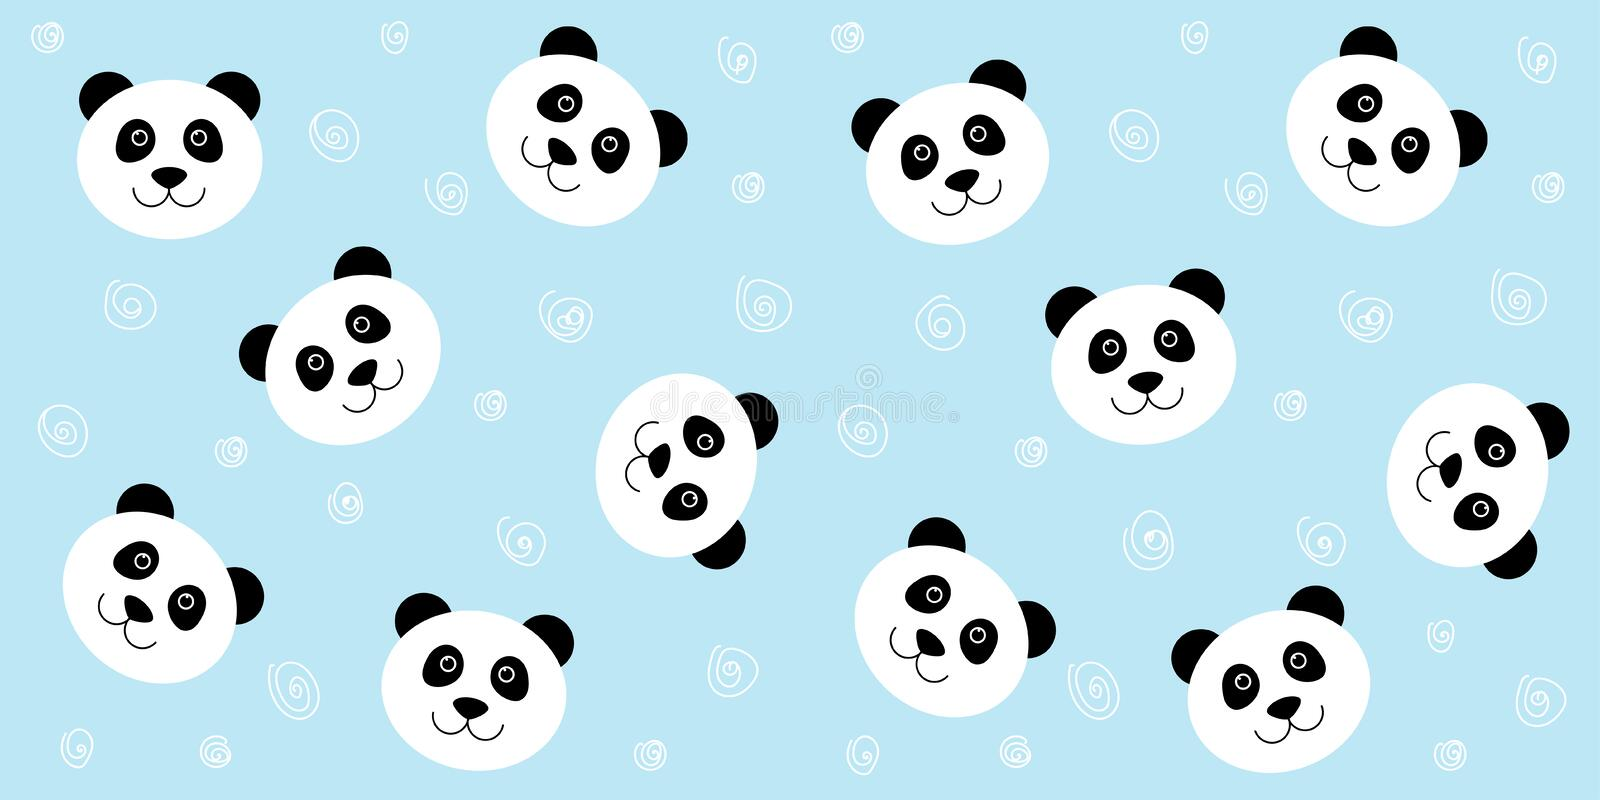 Cute Panda Wallpaper Stock Illustrations 4 044 Cute Panda Wallpaper Stock Illustrations Vectors Clipart Dreamstime